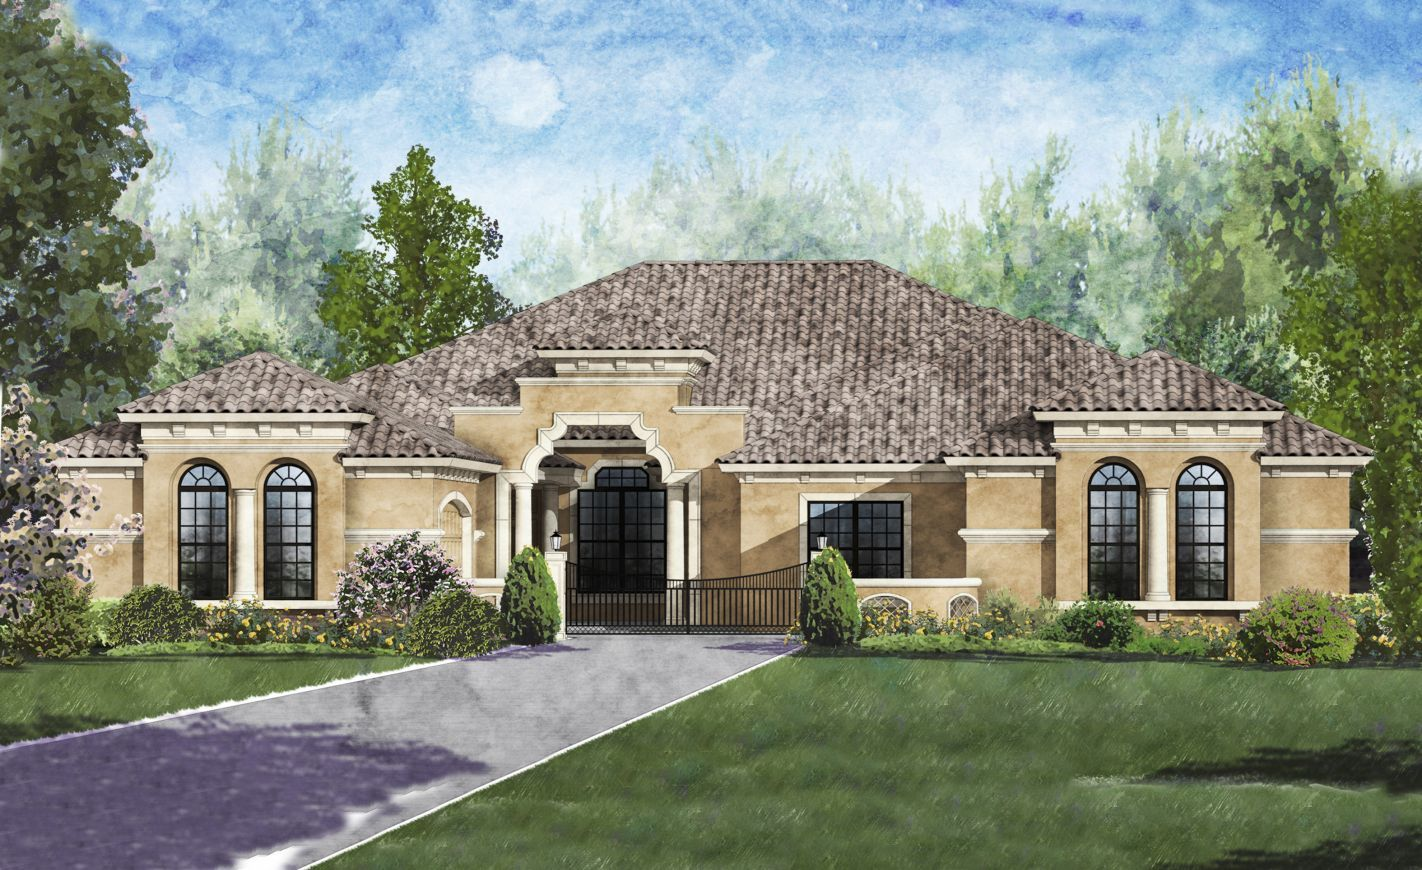 201 Daydream Ave Yulee Fl 32097 New Construction Home